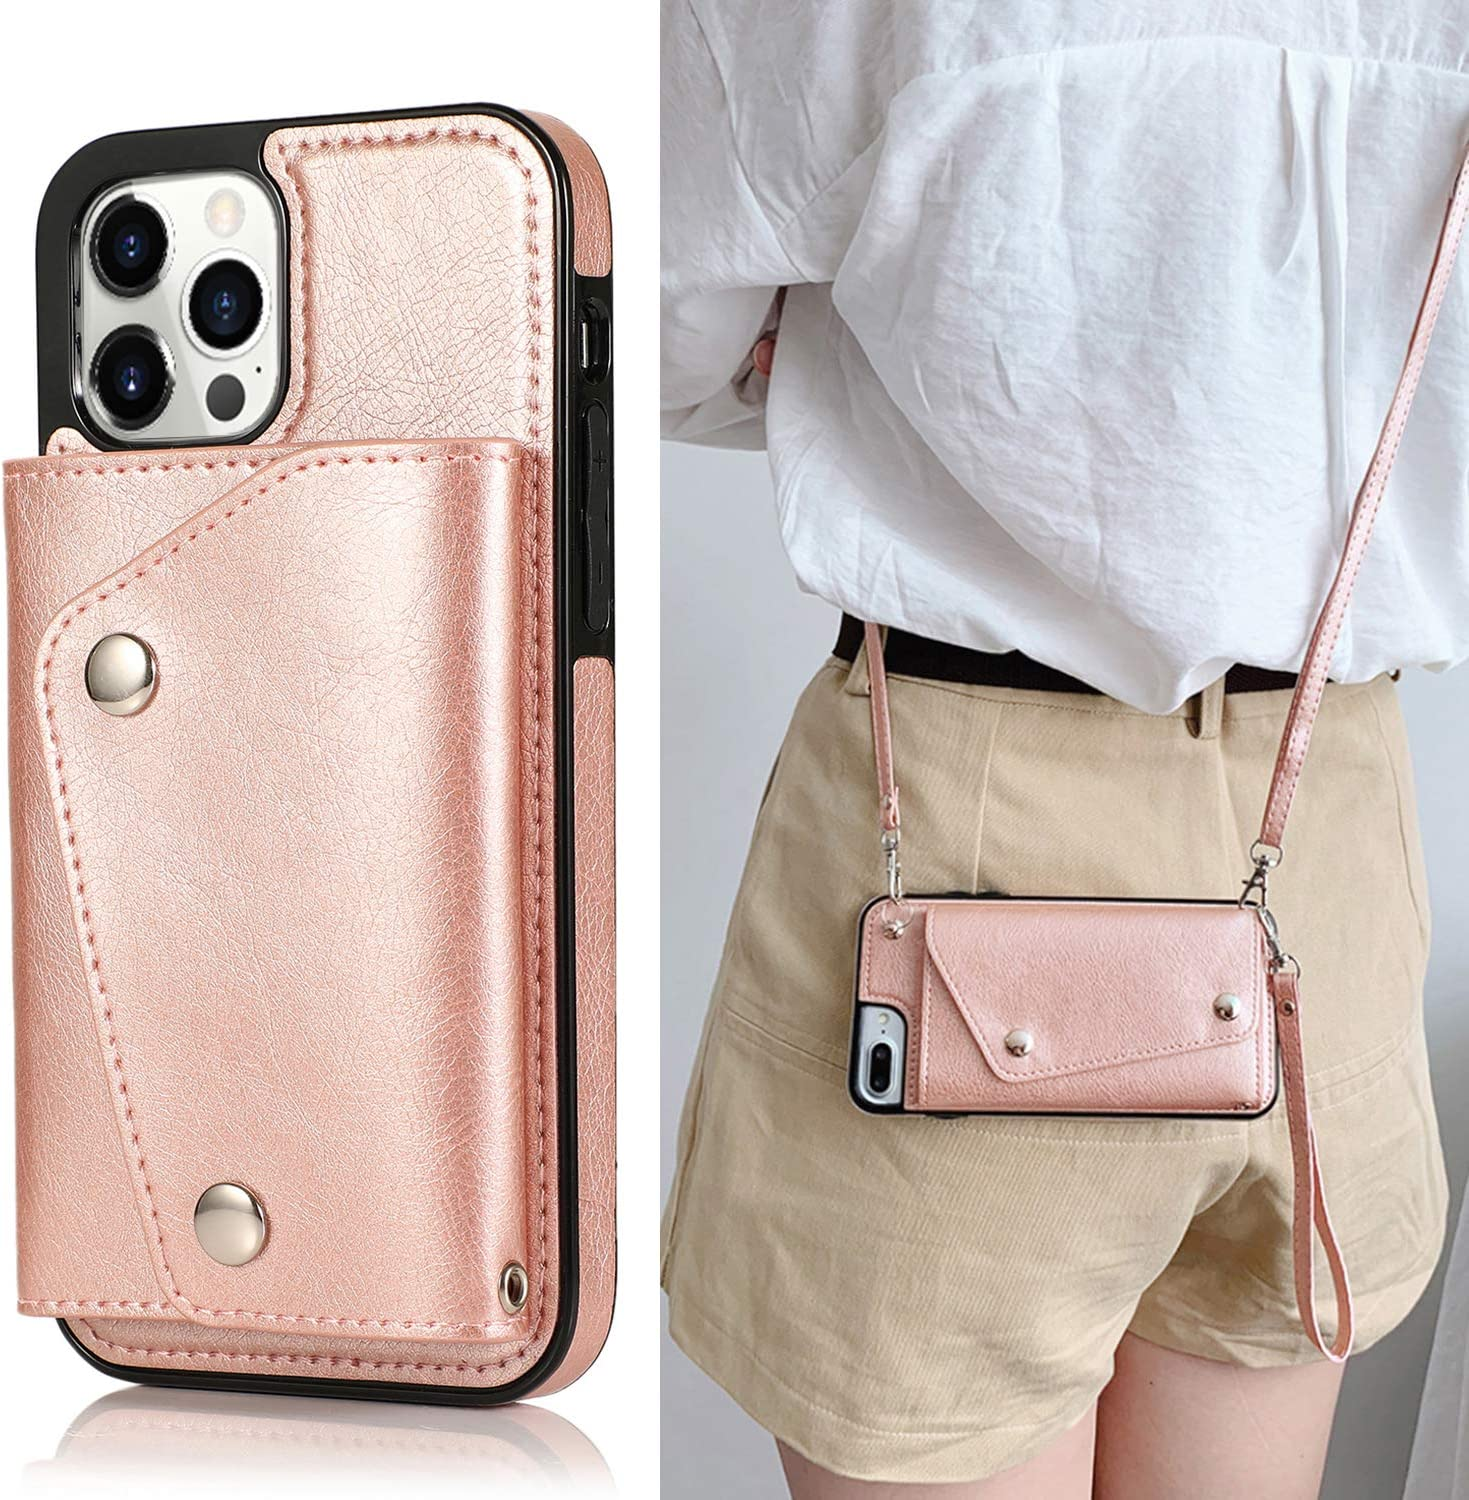 LUVI iPhone 12/iPhone 12 Pro Wallet Card Holder Case with Crossbody Neck Strap Lanyard Handbag Wrist Strap PU Leather Flip Cover with Credit Card Slot Kickstands Stand Case 6.1 inch Rose Gold